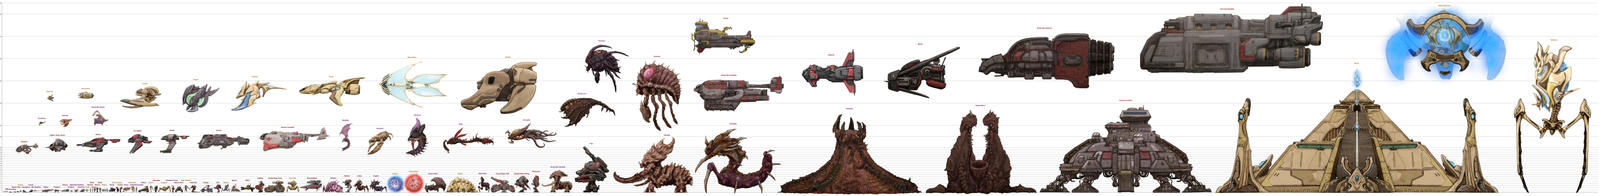 Starcraft to Scale (old)